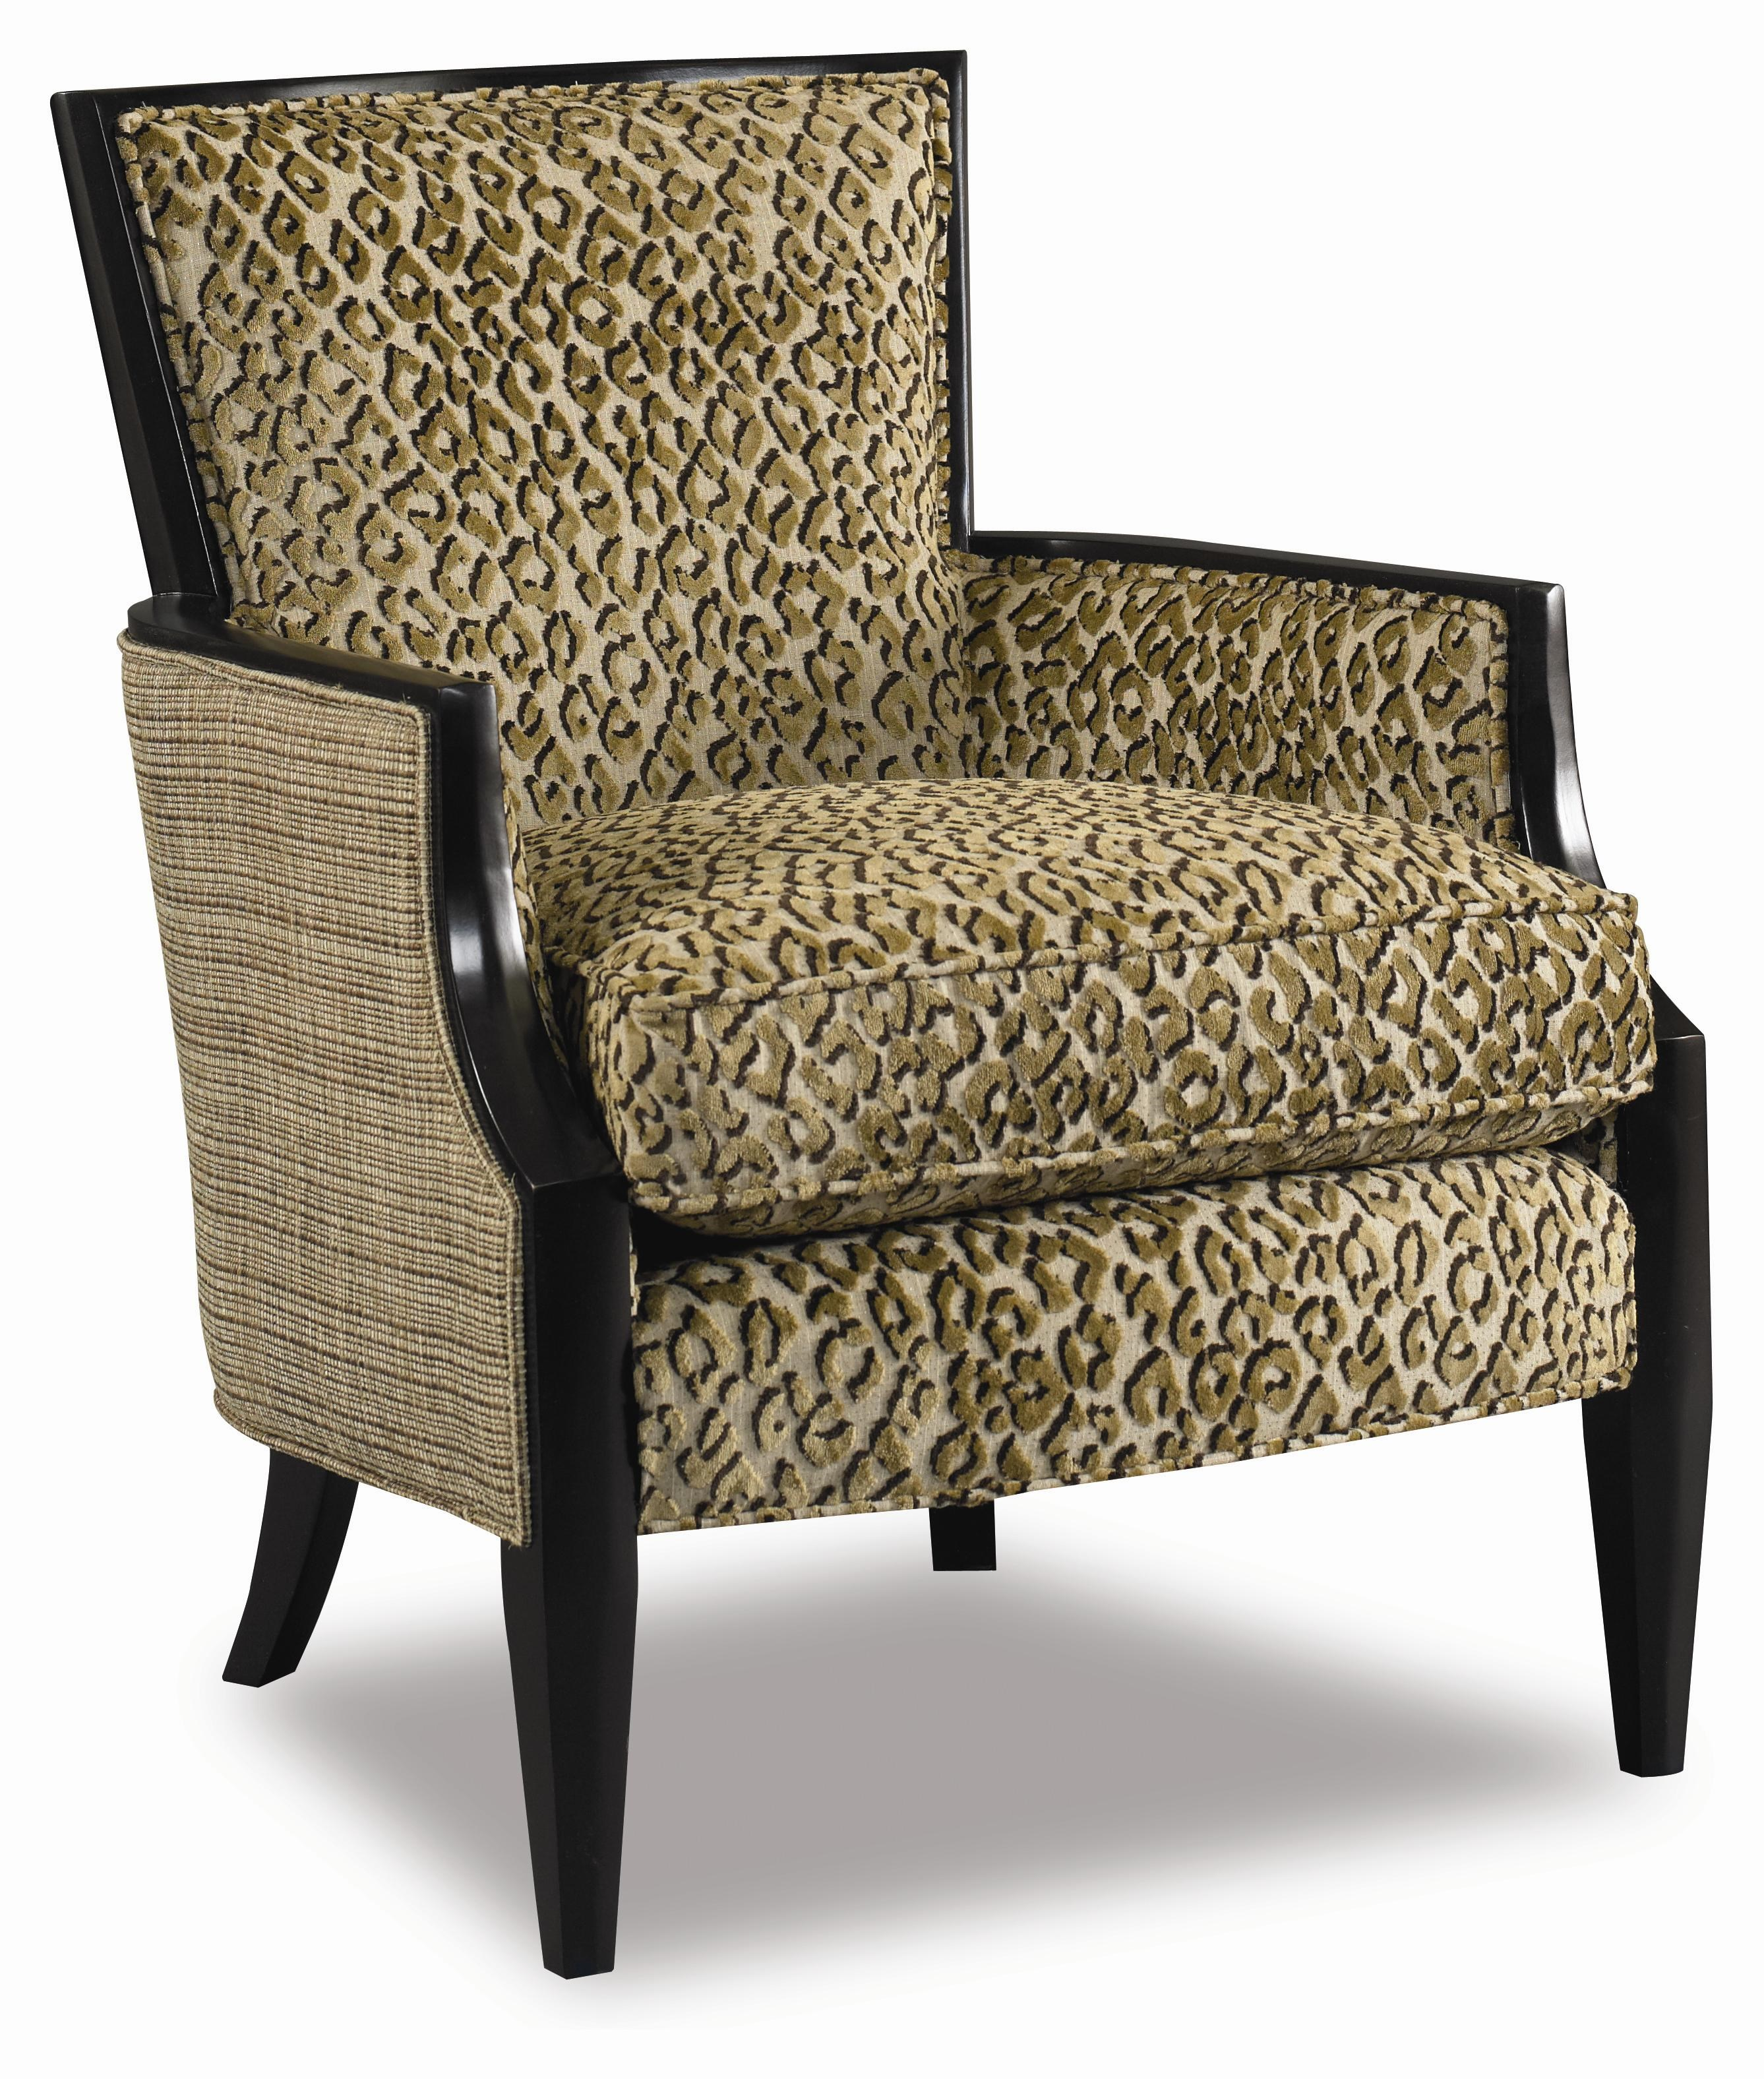 Sam Moore Nadia Upholstered Exposed Wood Accent Chair Pilgrim Furniture City Exposed Wood Chair